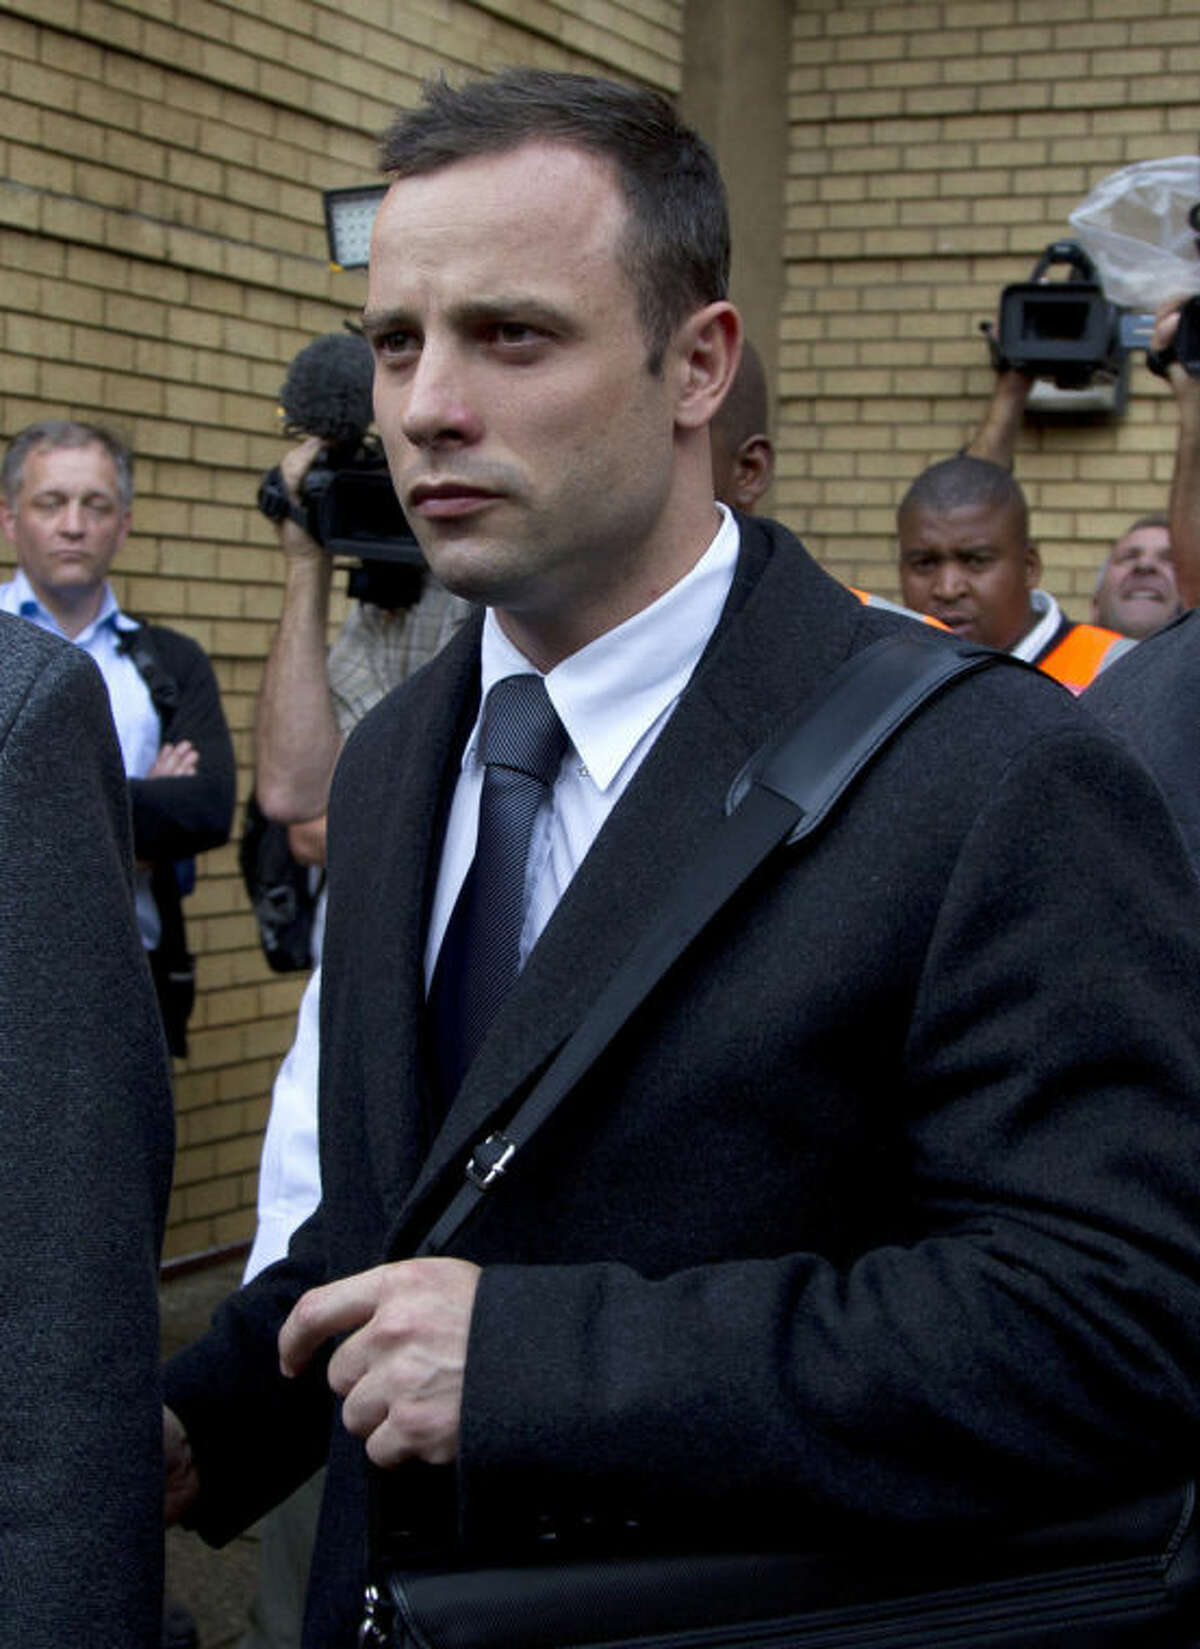 Oscar Pistorius, leaves the high court in Pretoria, South Africa, Tuesday, March 11, 2014. Pistorius is charged with murder for the shooting death of his girlfriend, Reeva Steenkamp, on Valentines Day in 2013. (AP Photo/Themba Hadebe)